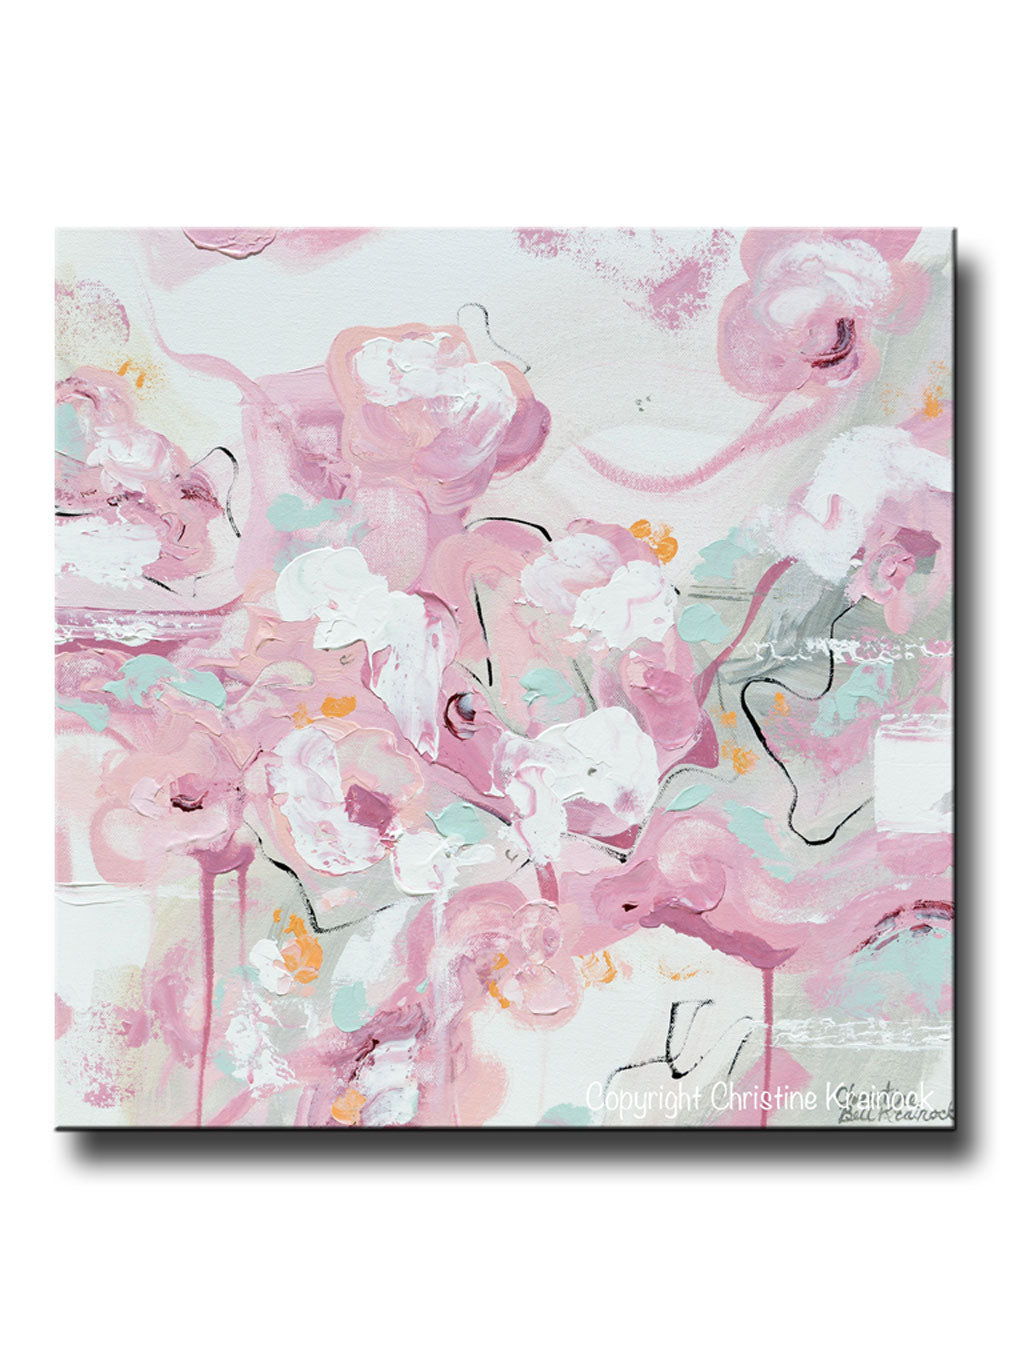 Original Art Abstract Painting Pink White Grey Cream Home Decor Floral Wall Art 20x20